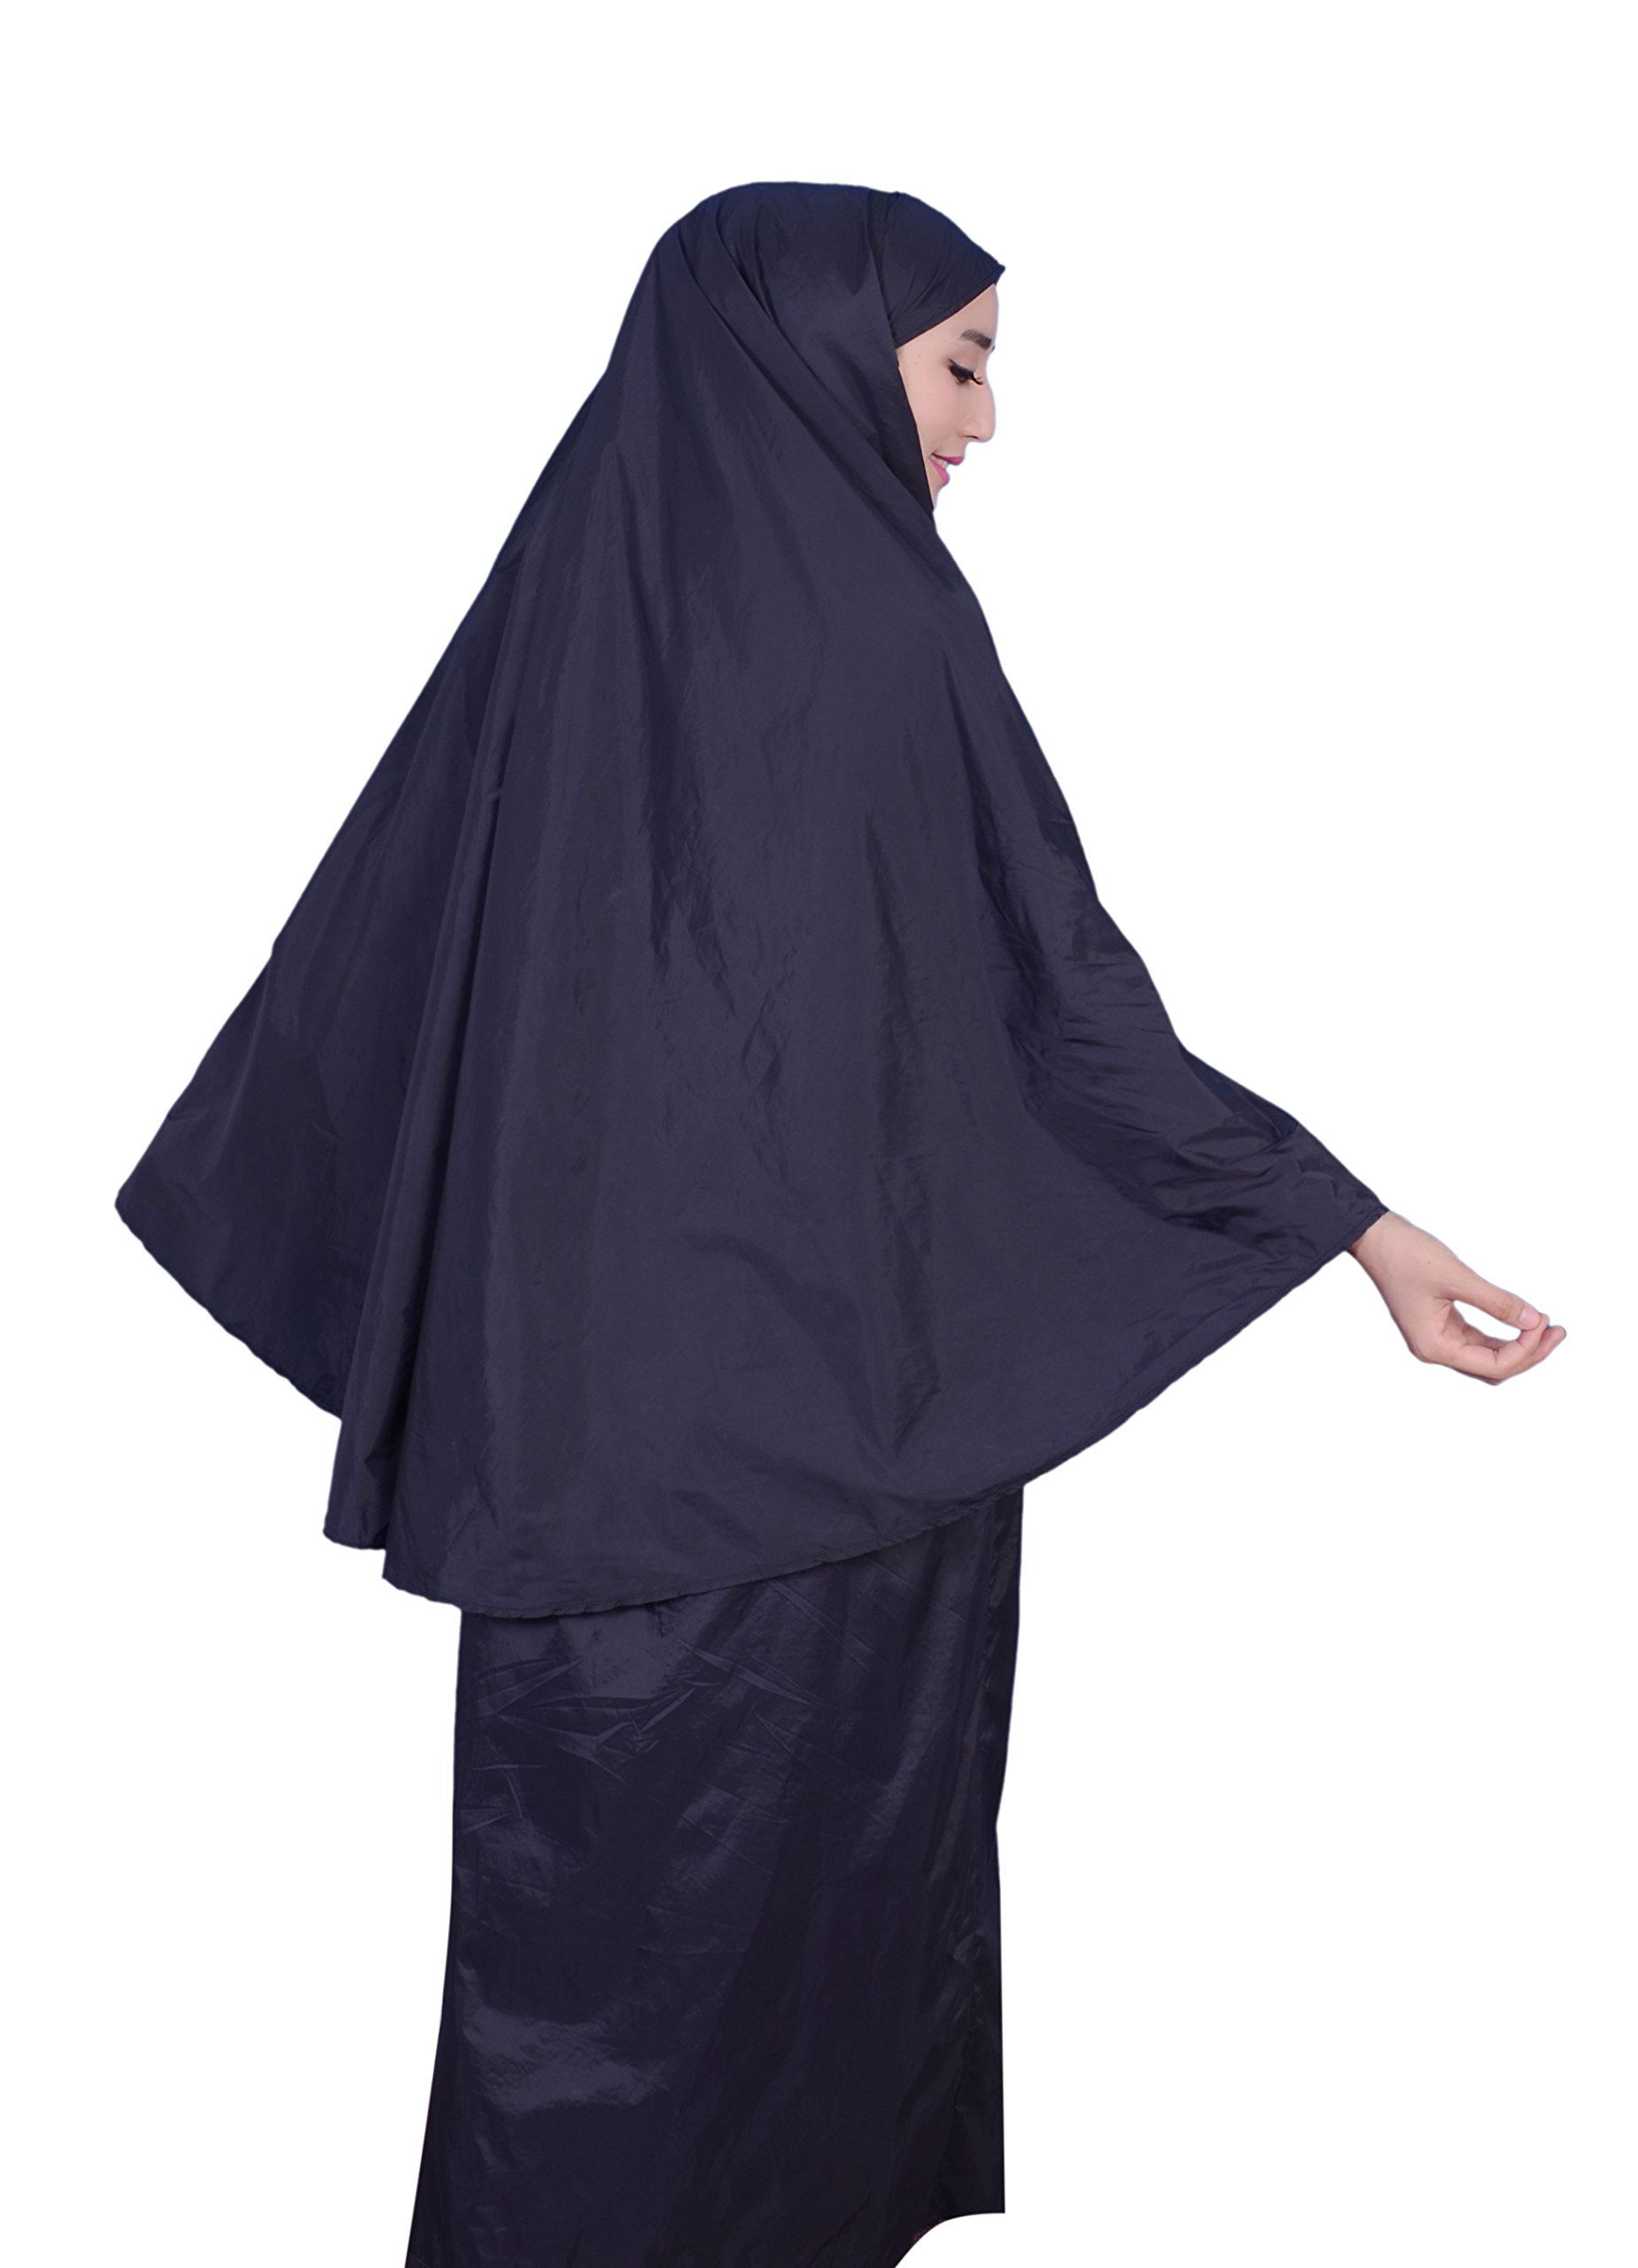 Muslim Women's Prayer Dress Pocket-Size Hijab Scarf Skirt Islamic Abaya by AJAR by Ajar (Image #5)